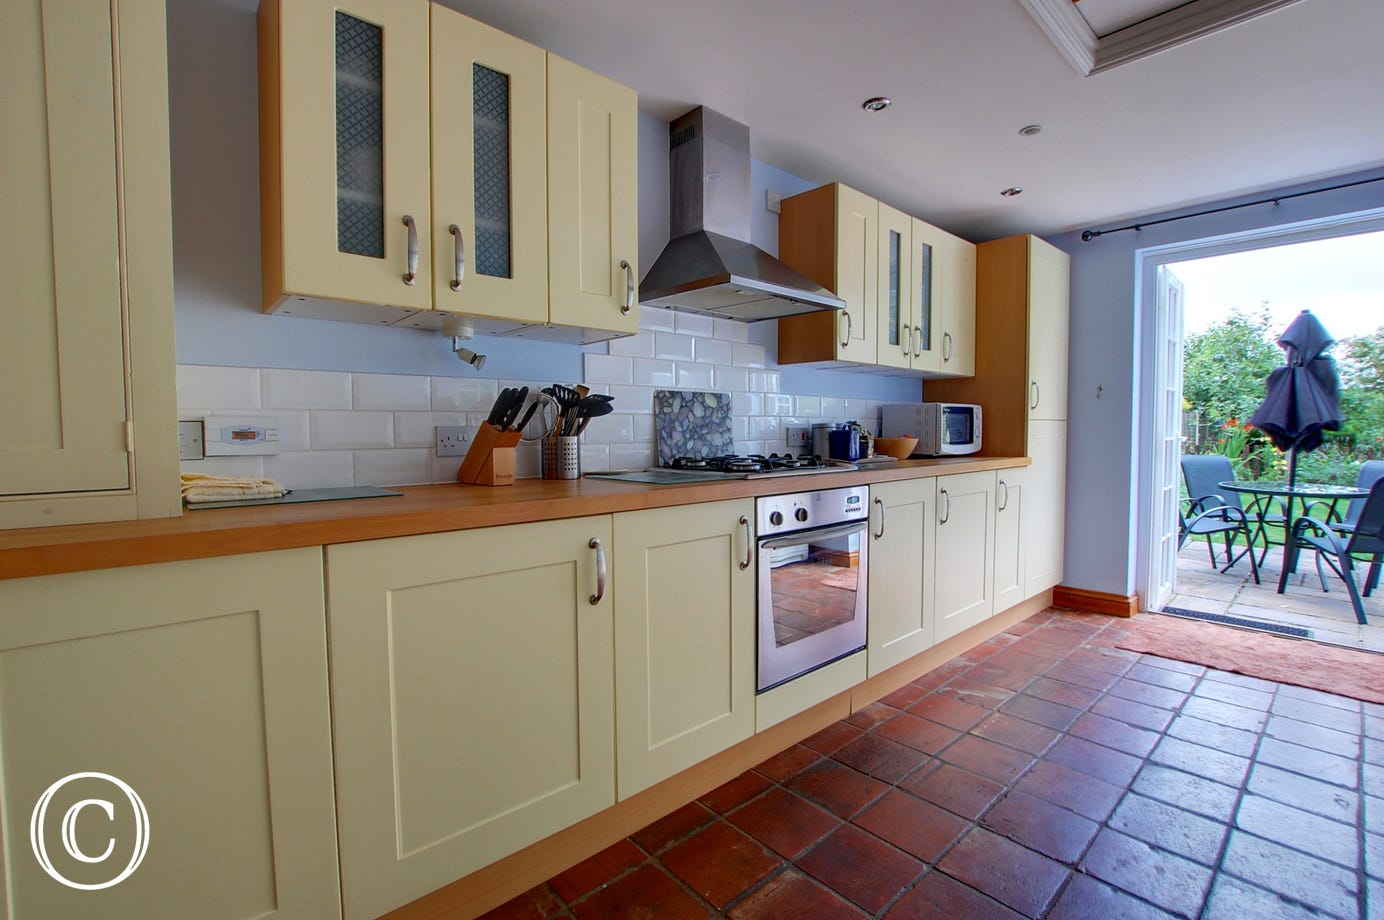 The spacious kitchen opens off the dining area and has cream cupboards and a ceramic tiled floor